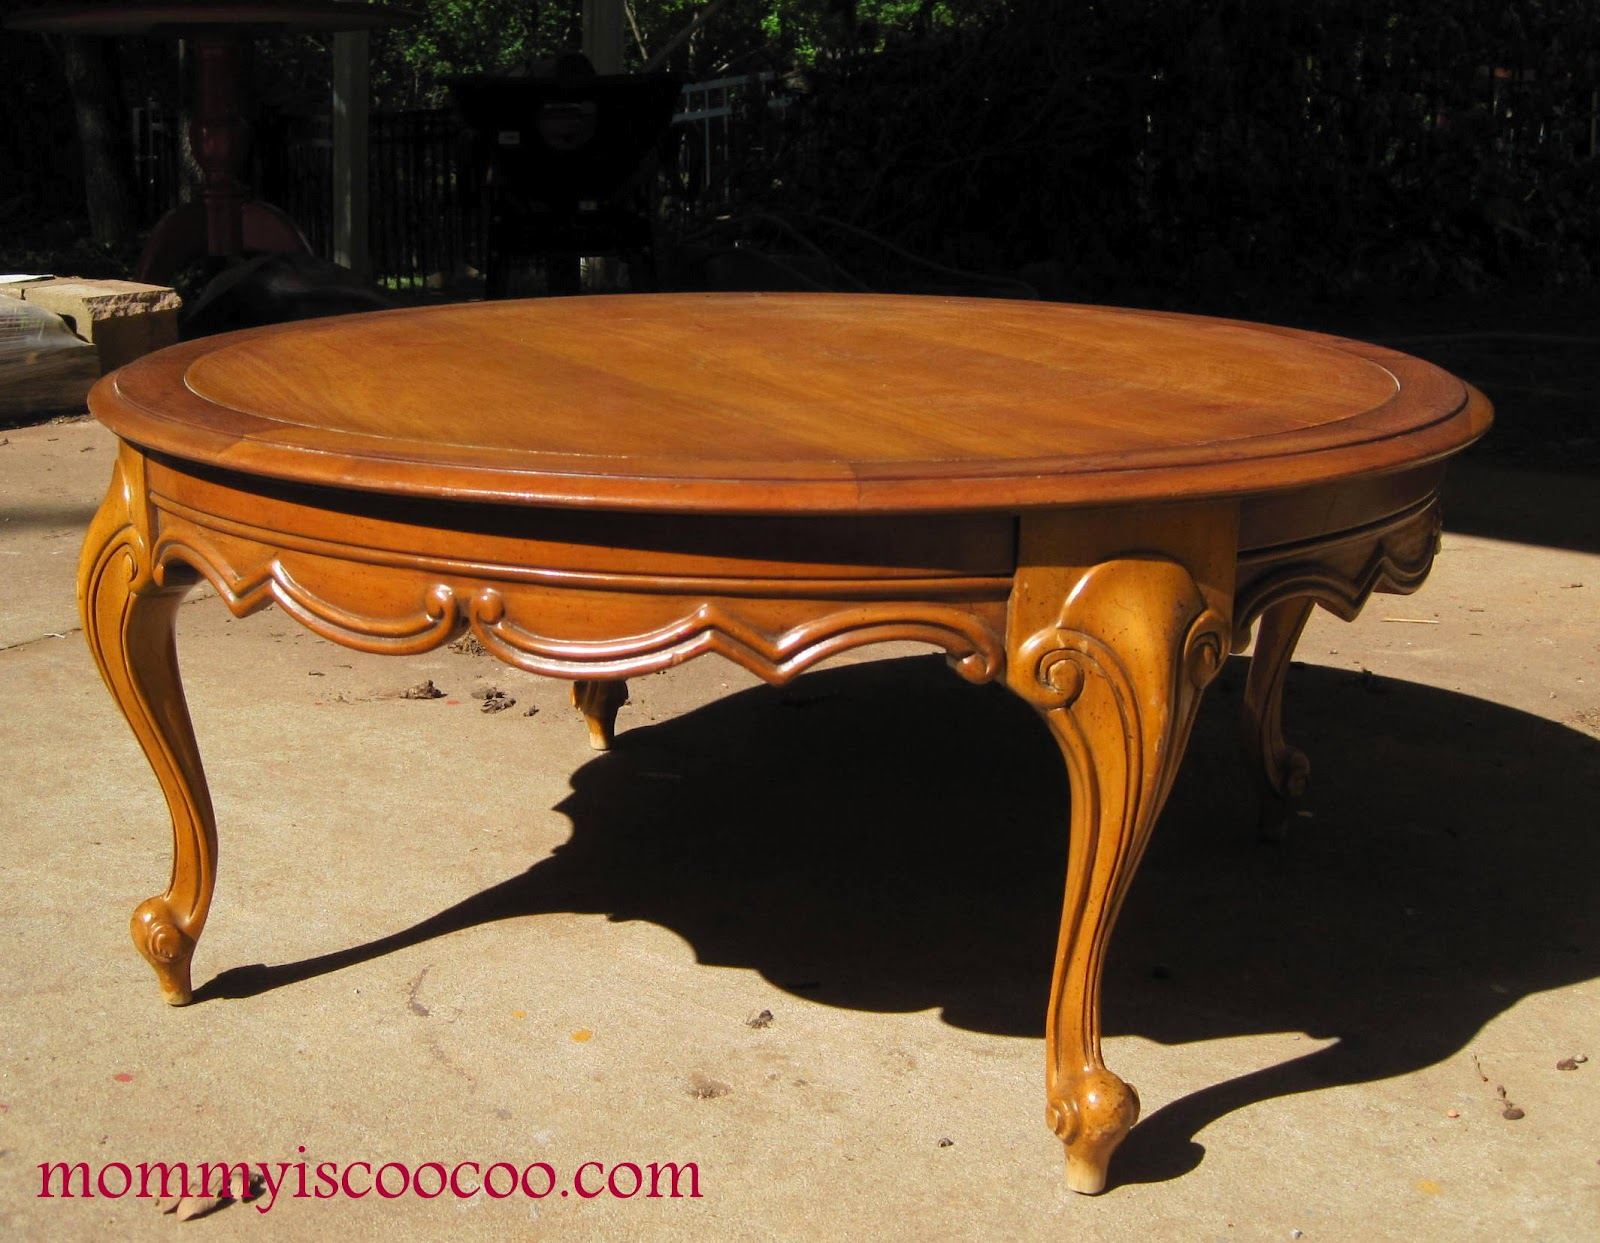 round victorian coffee table - mommy is coo coo